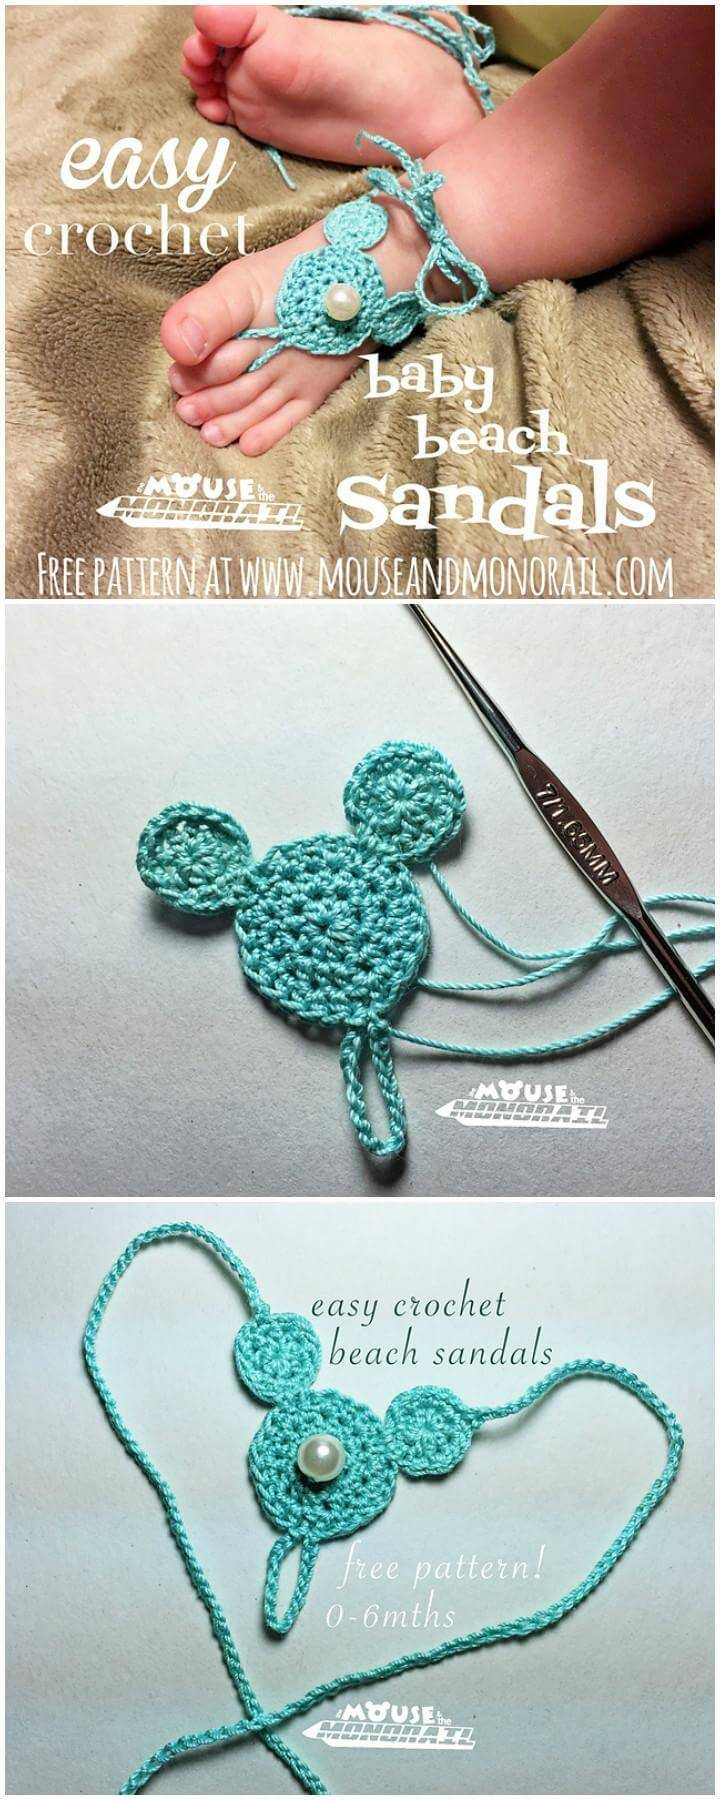 Easy Crochet Baby Beach Barefoot Sandals